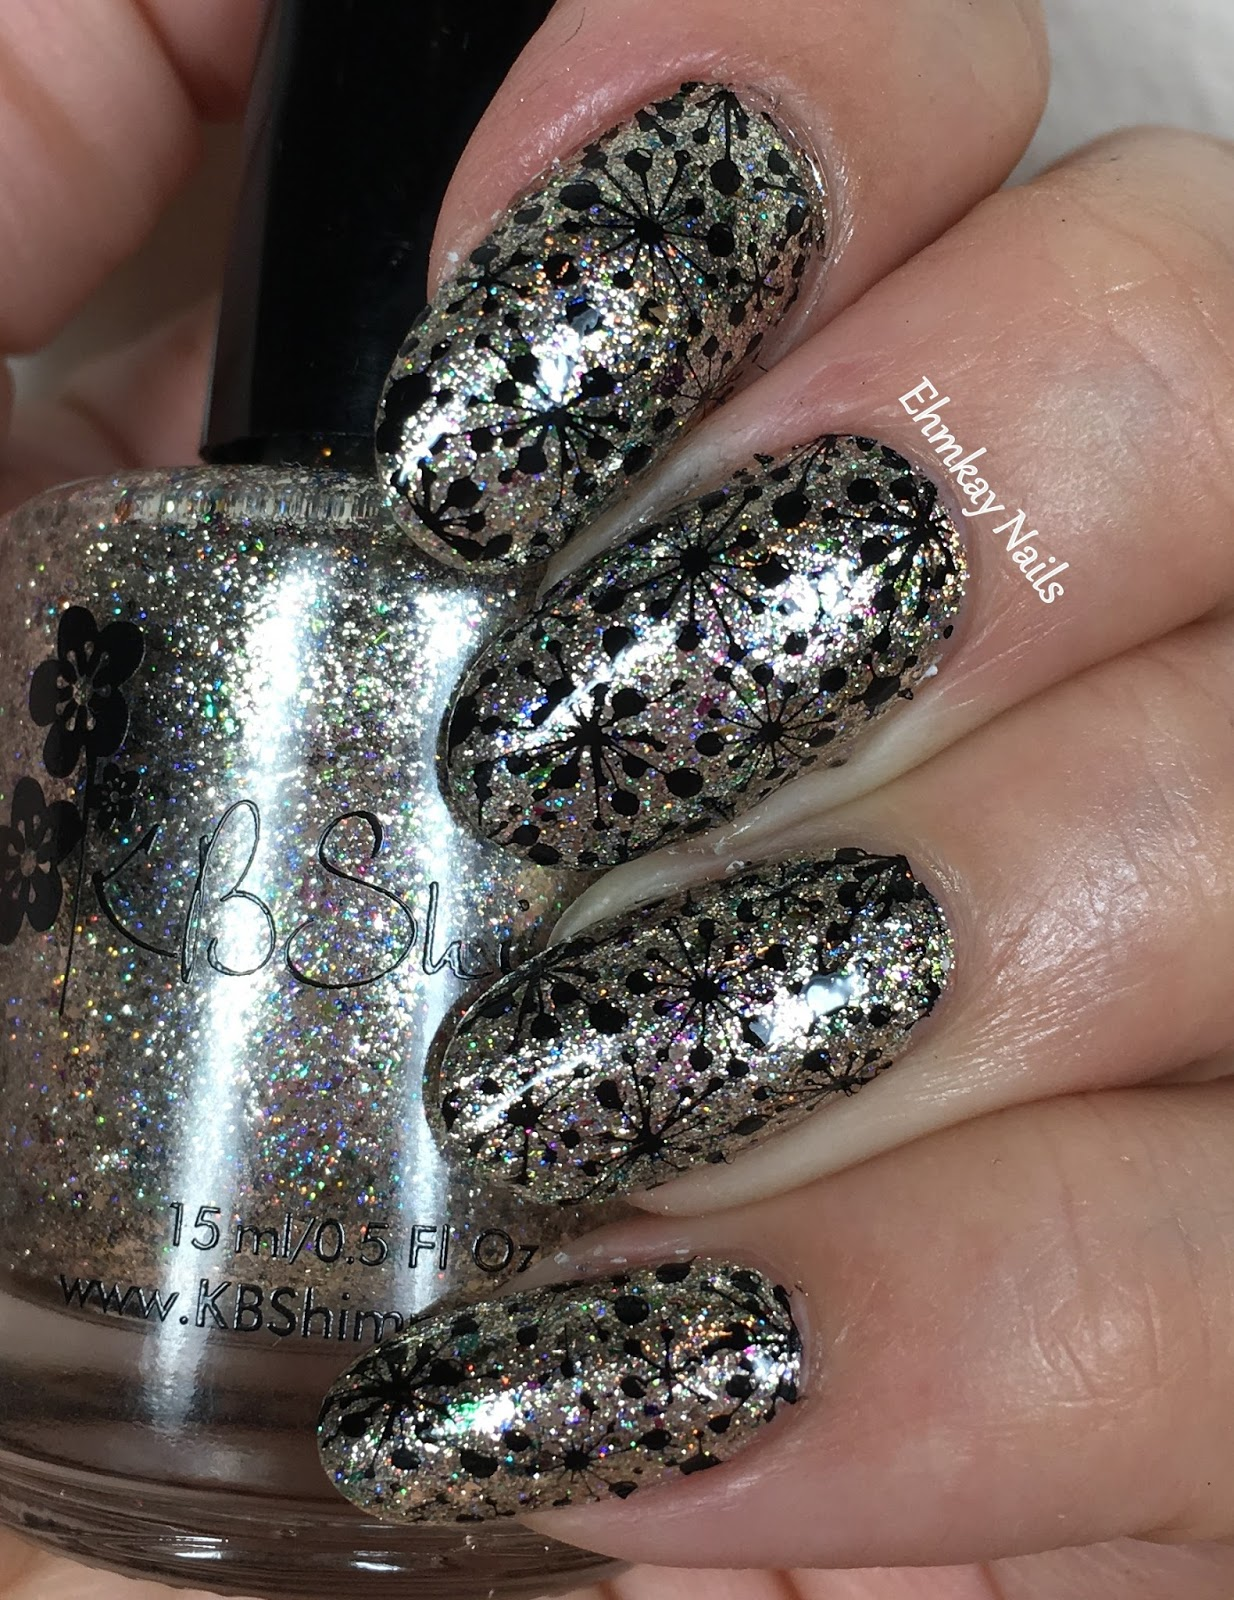 Ehmkay Nails: New Year's Eve Nail Art With KBShimmer Bling